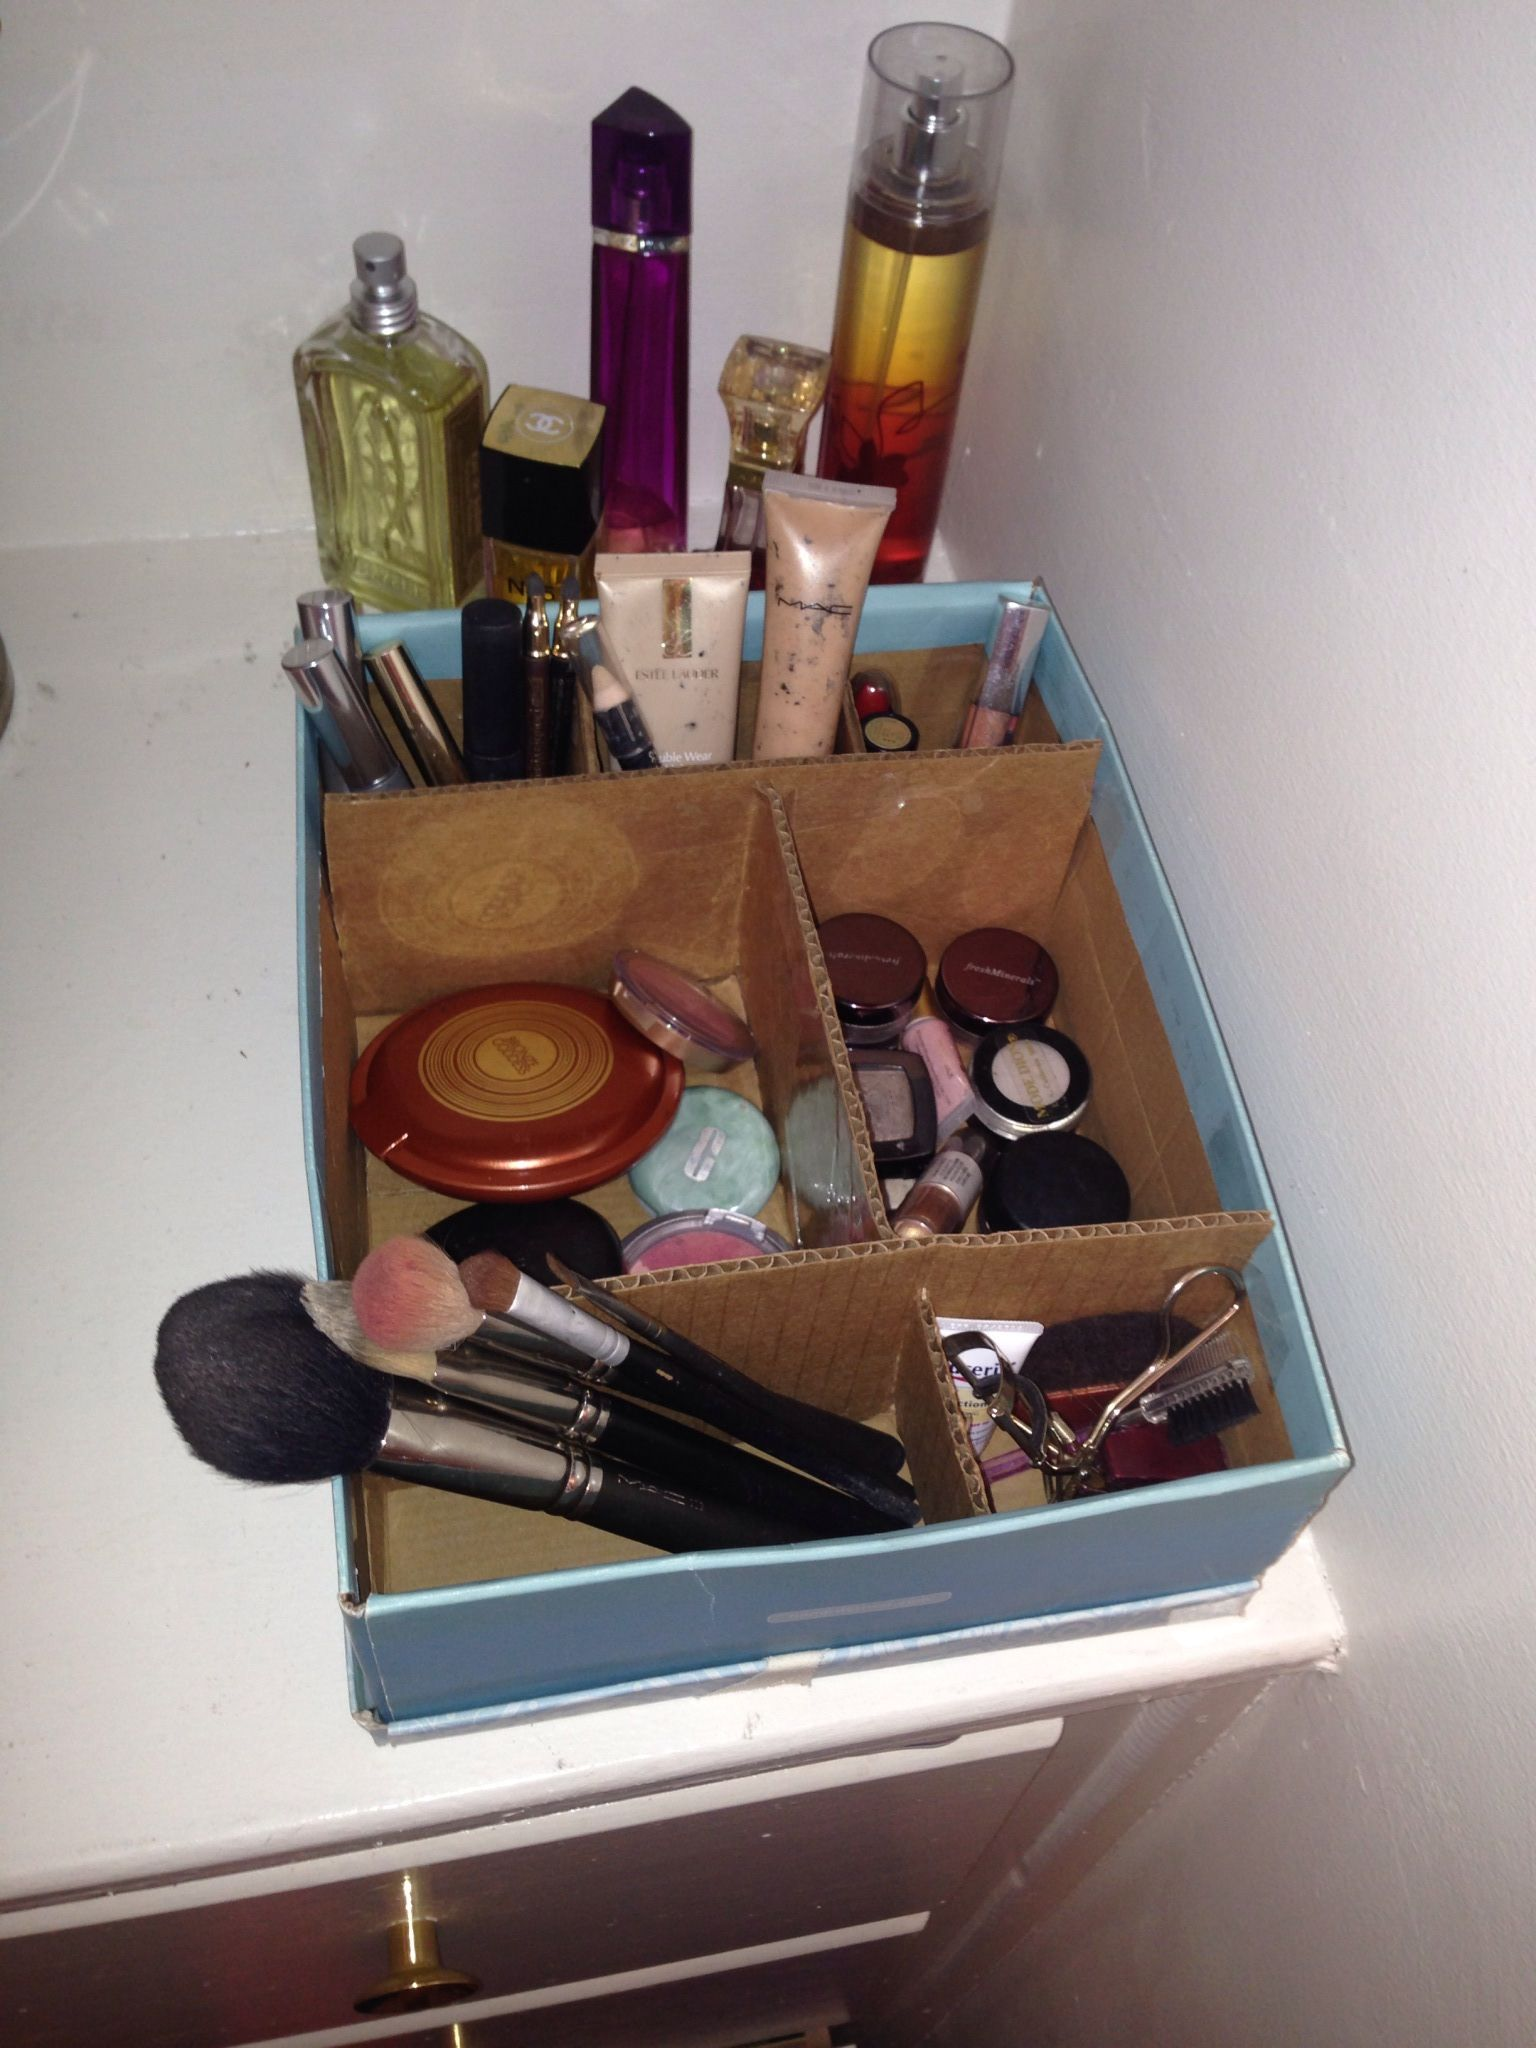 Diy Makeup Organizer Idea I Had That Worked For Me Shoe Box Cardboard Scissors And Tape Are All Needed